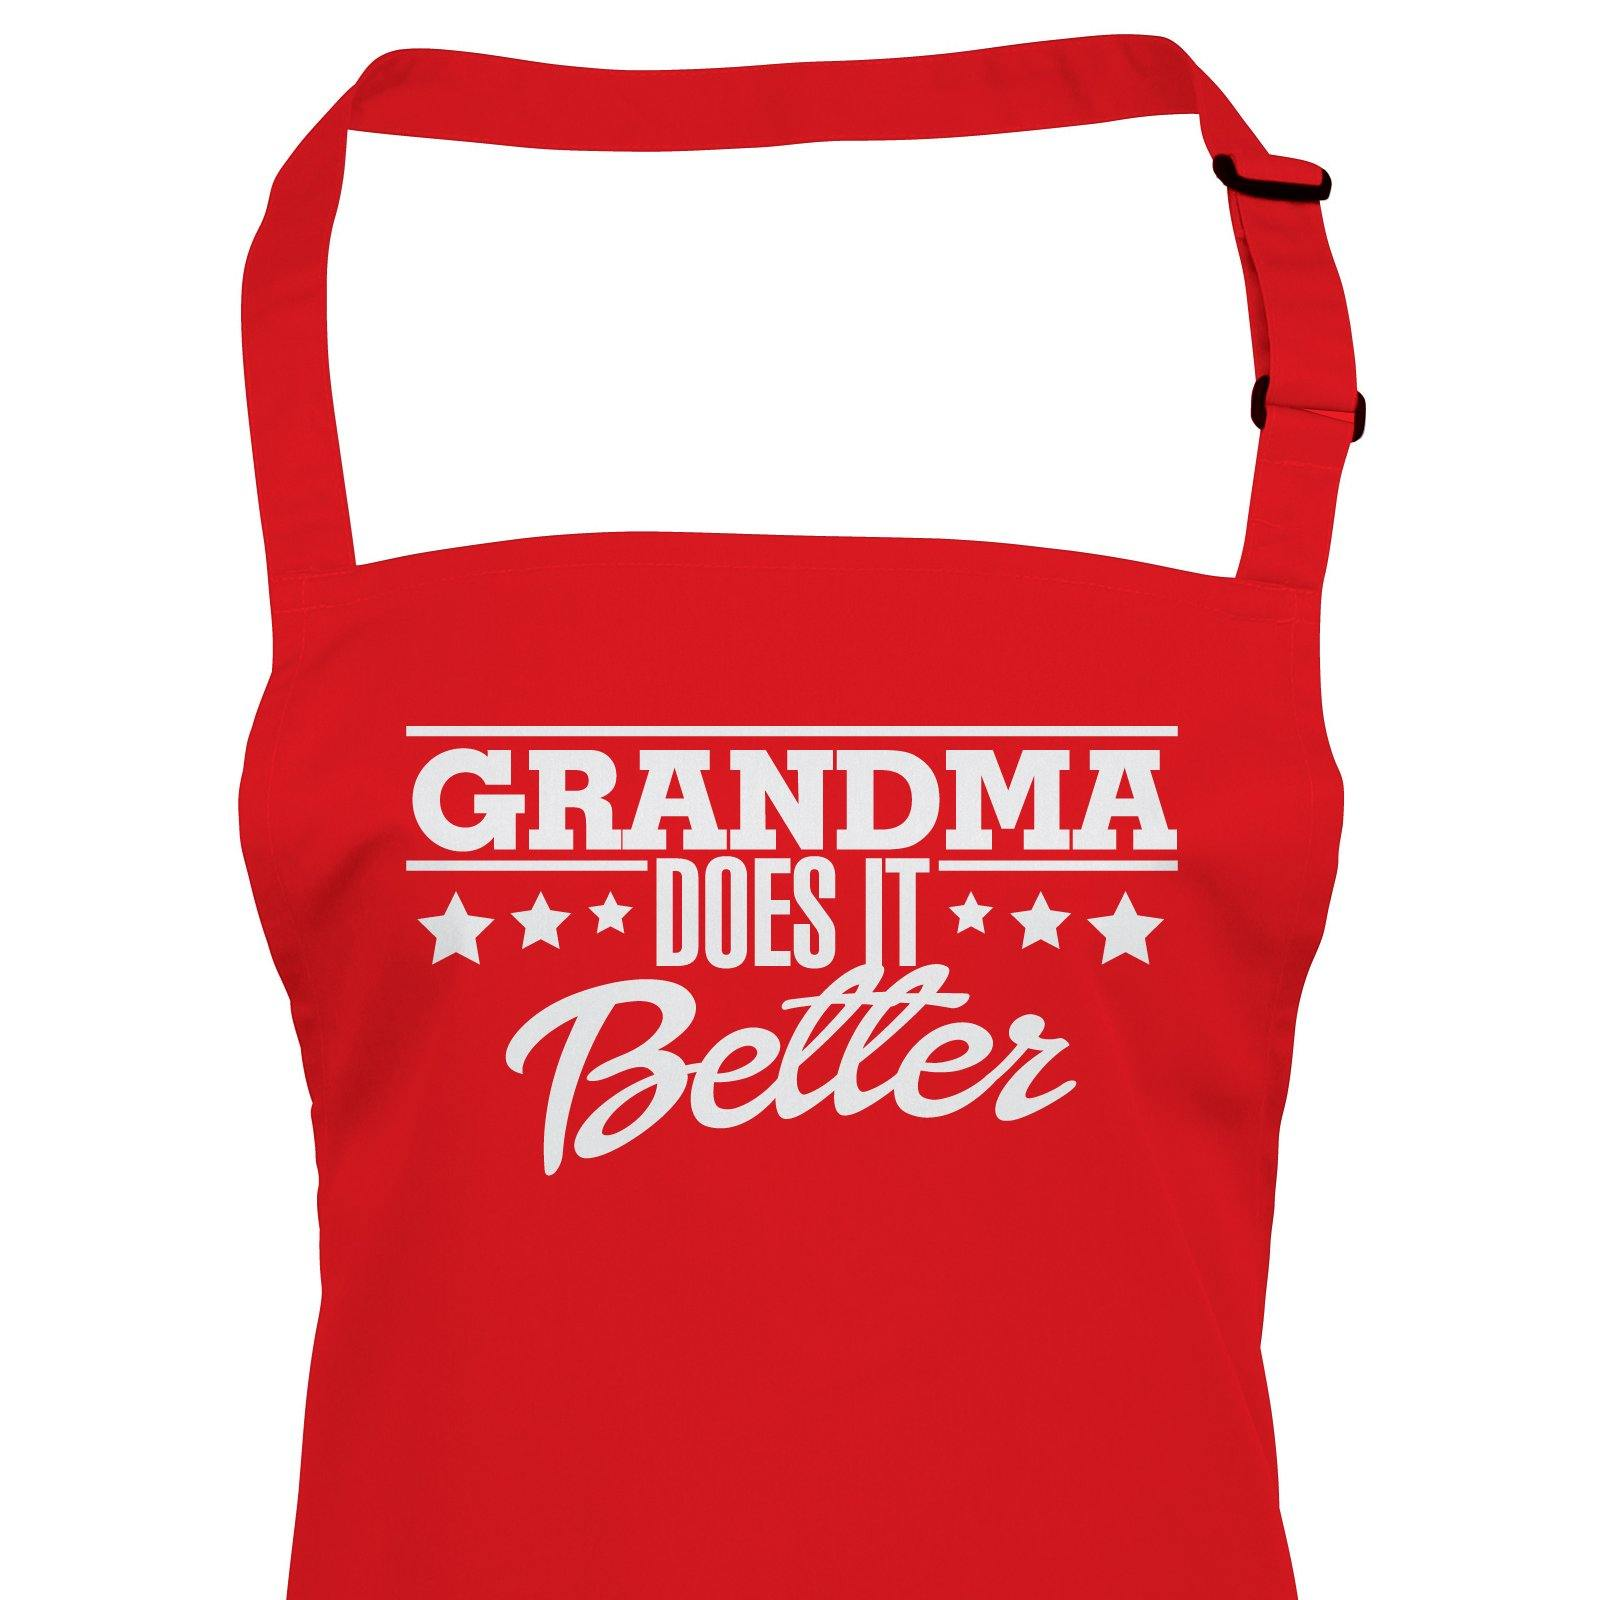 Grandma Does It Better, Apron